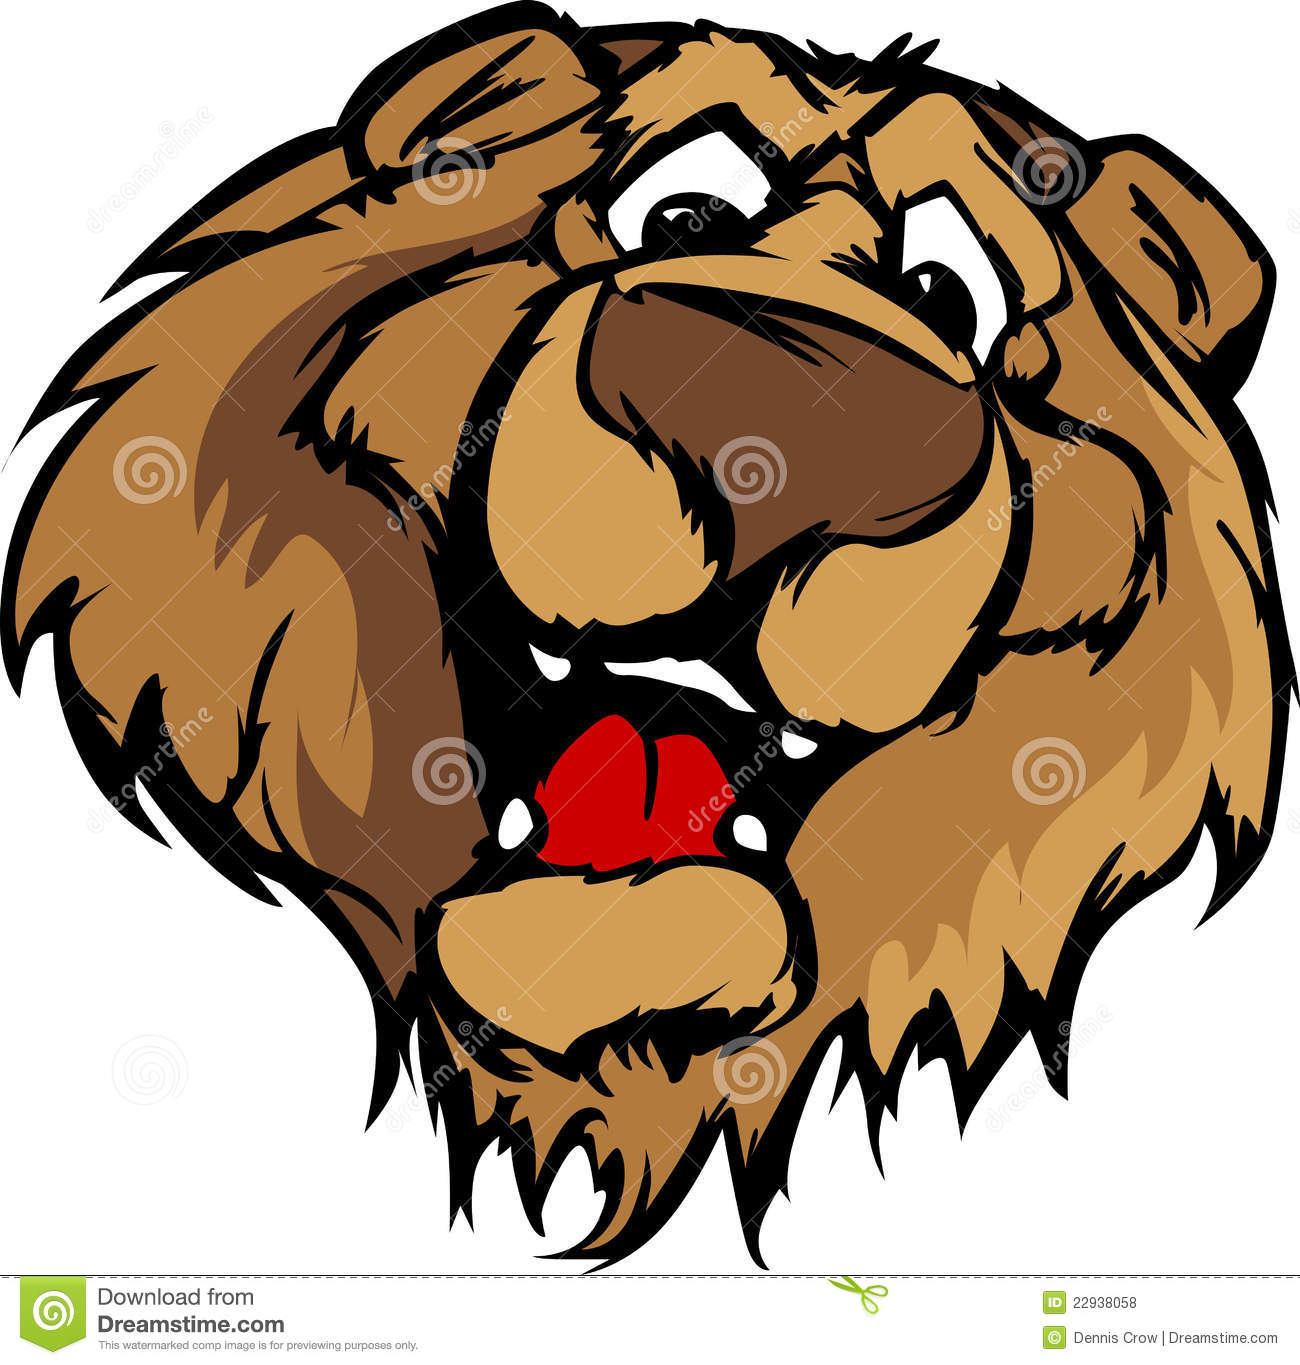 Smiling Cartoon Bear Mascot Graphic Royalty Free Stock Photos - Image ... Grizzly Bear Face Logo